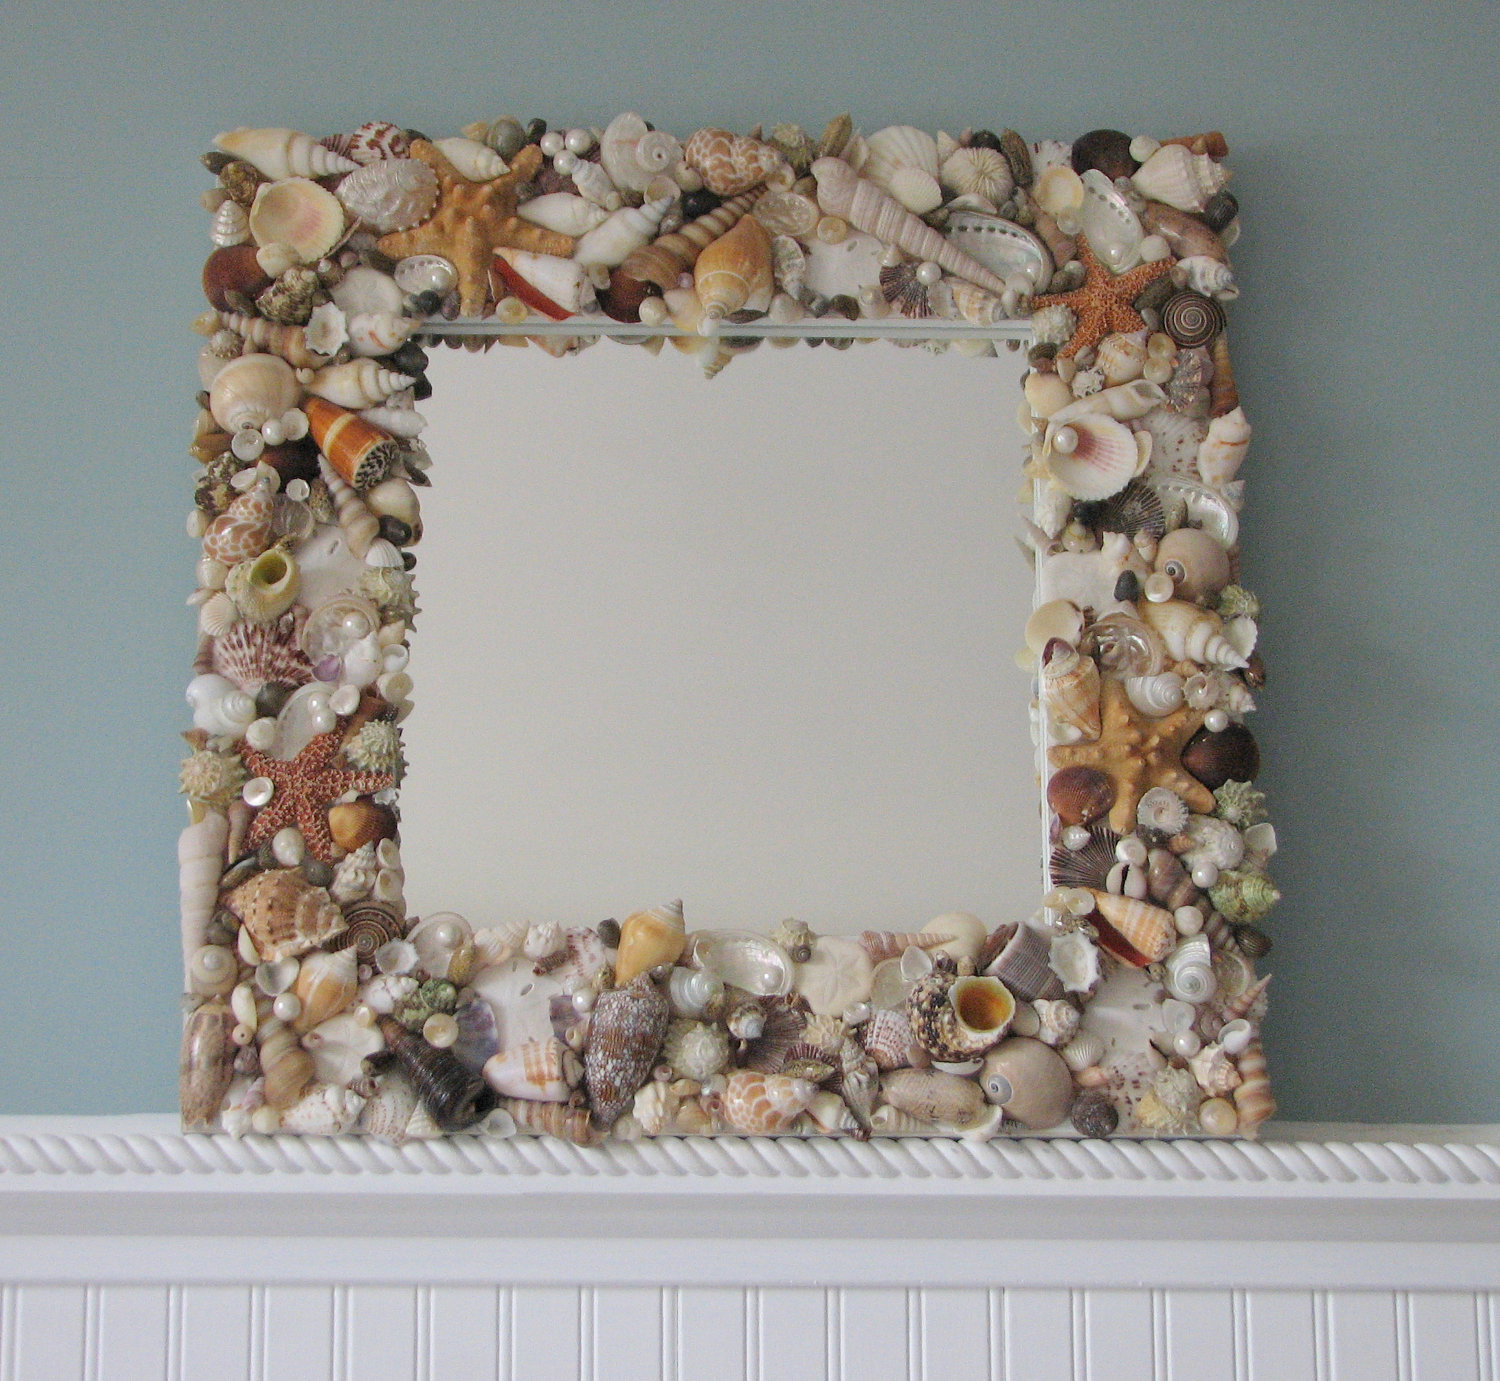 Beach Decor Shell Mirror  Nautical Decor Natural Seashell. Party Room For Rent. Italian Dining Room Furniture. Decorative Gold Balls. Dining Room Valances. Two Room Suites In New York City. Pub Style Dining Room Sets. Tile Designs For Living Room Floors. Media Room Carpet